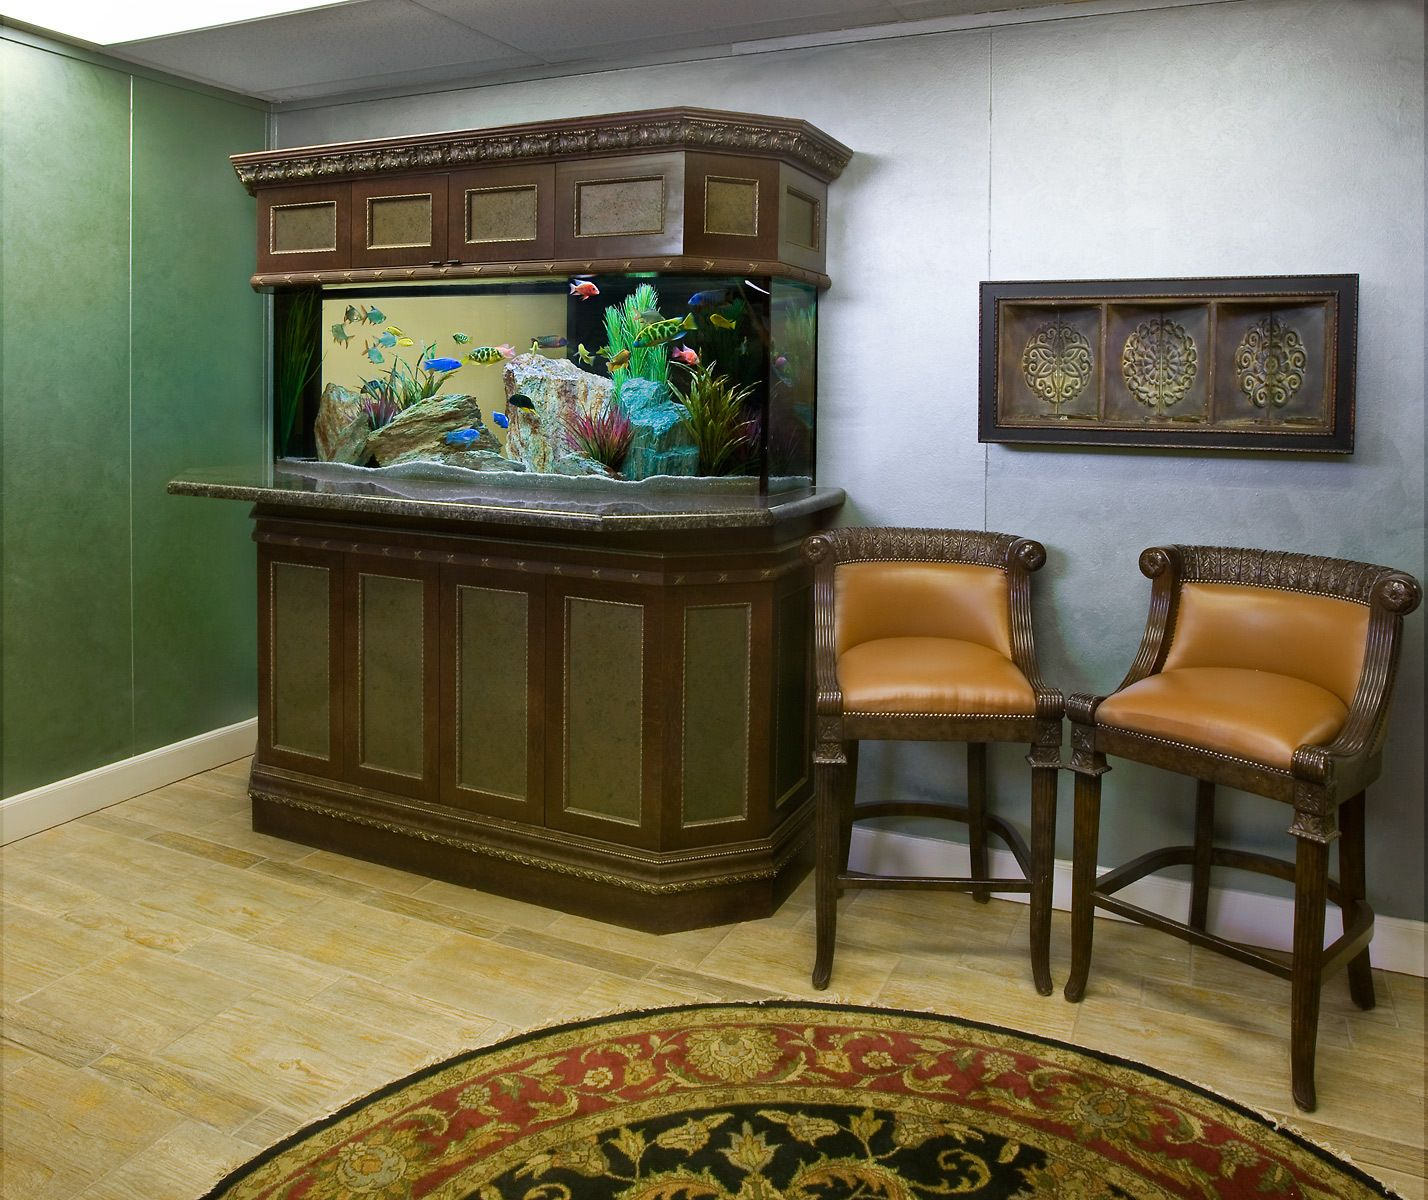 A Colorful Freshwater Aquarium in a Commercial Reception Area